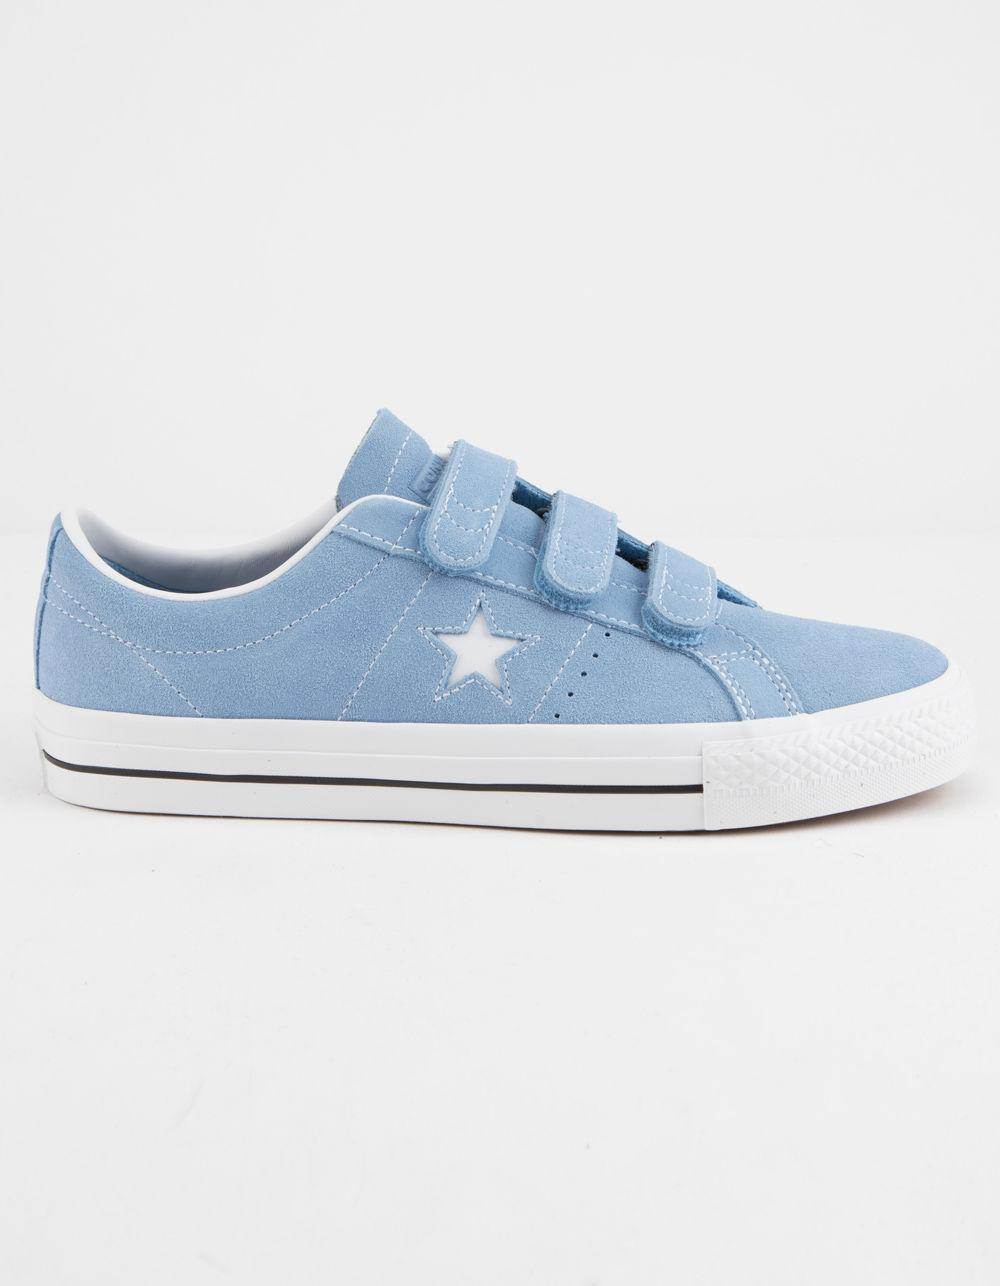 Lyst - Converse One Star Pro 3v Ox Light Blue   White Shoes in Blue ... debaa0428